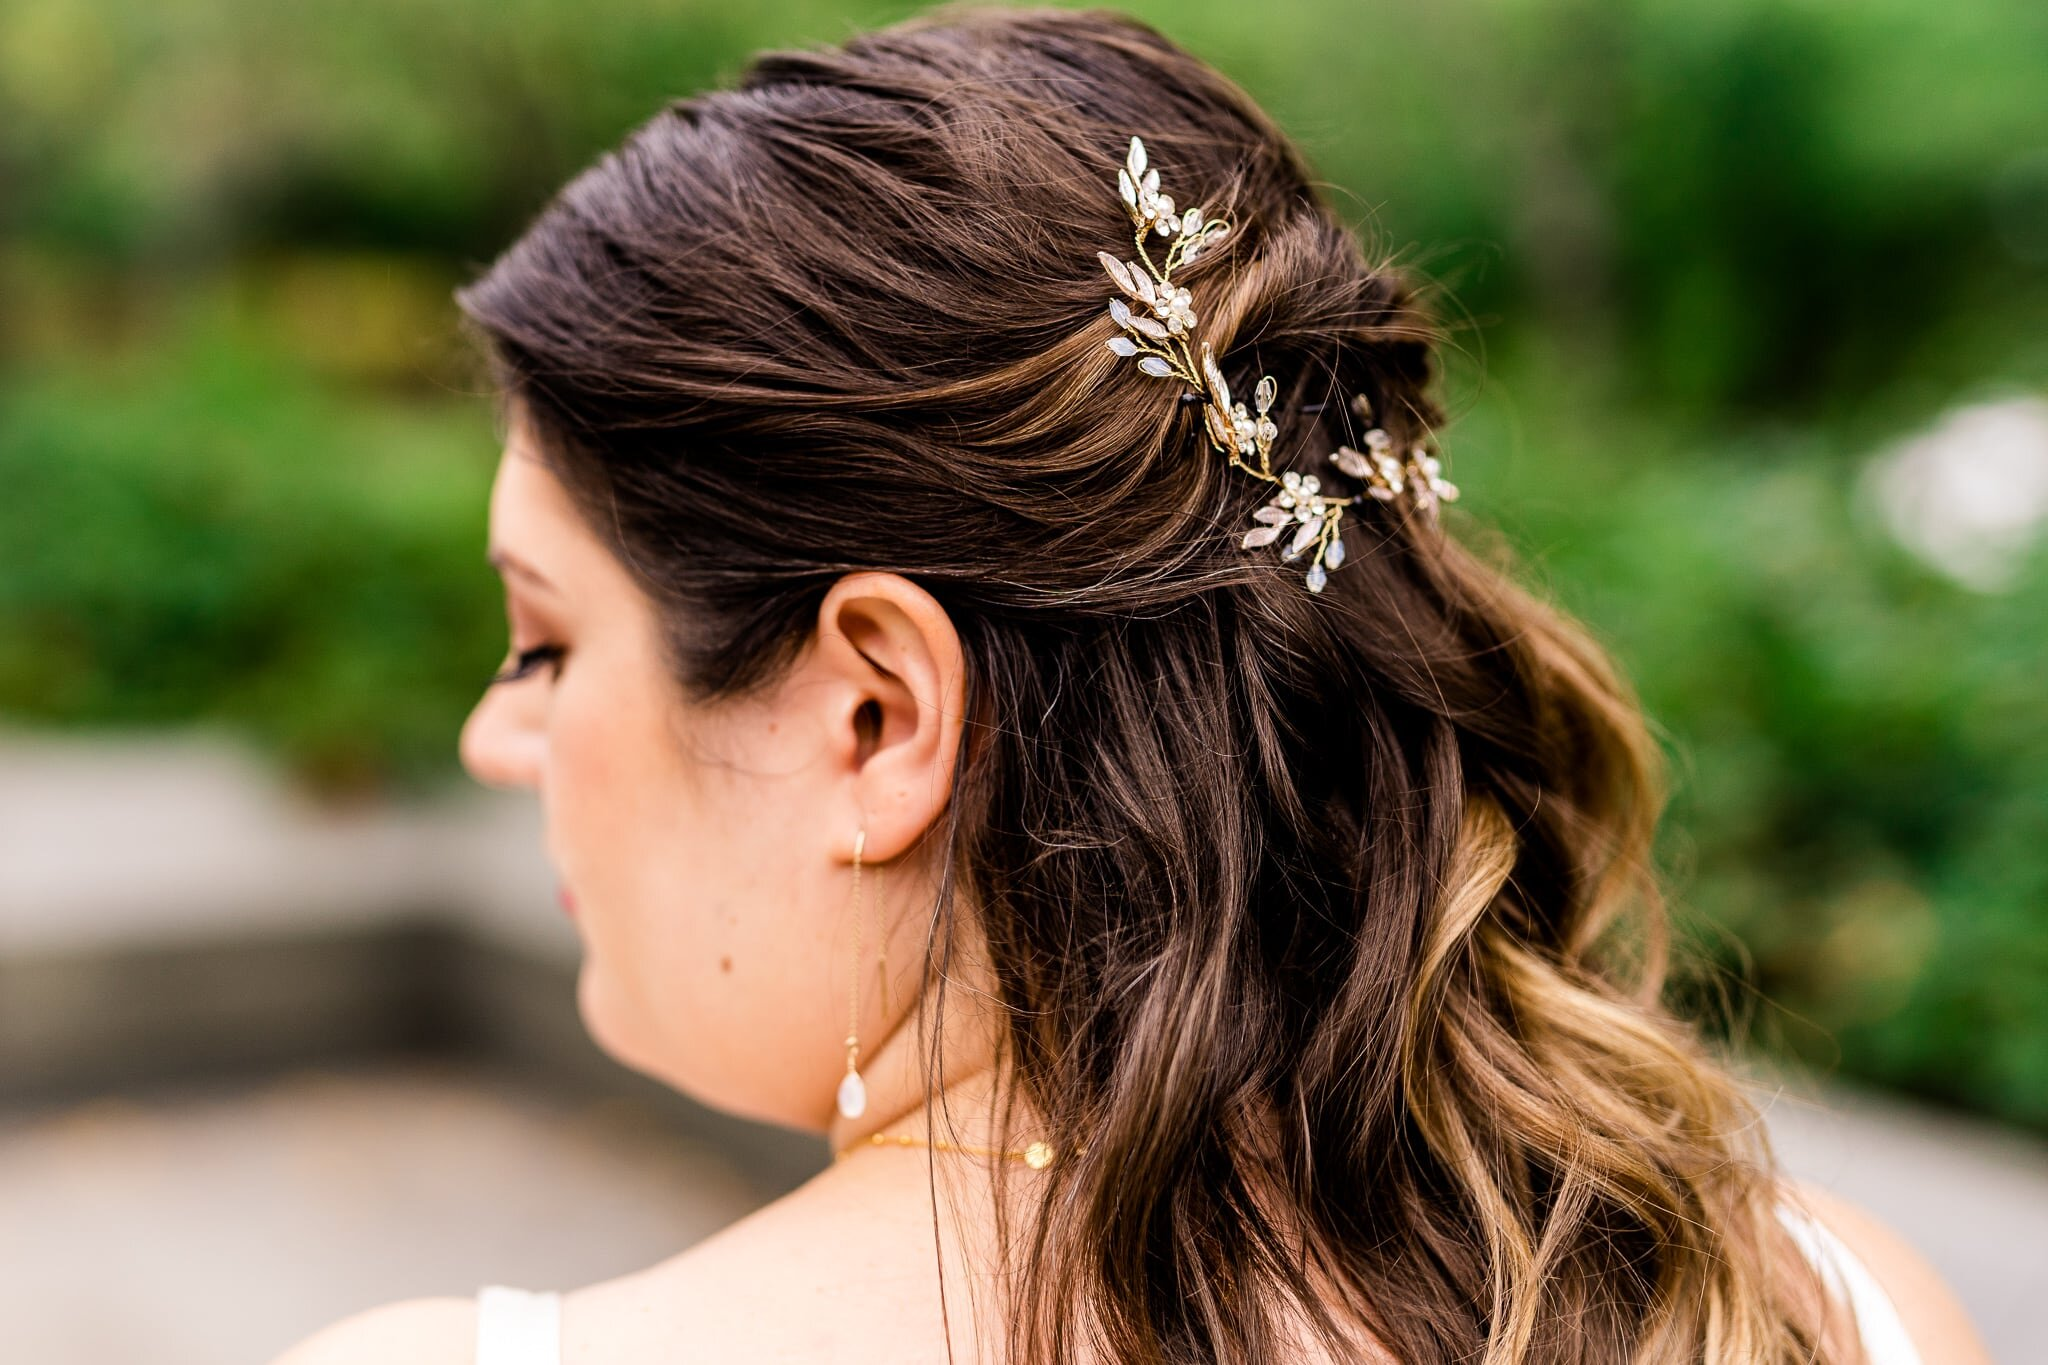 Details of a bride's jewelry including a bridal hair vine hairpiece and drop earrings on her wedding day at the Tidal Basin near the MLK Memorial in Washington, DC